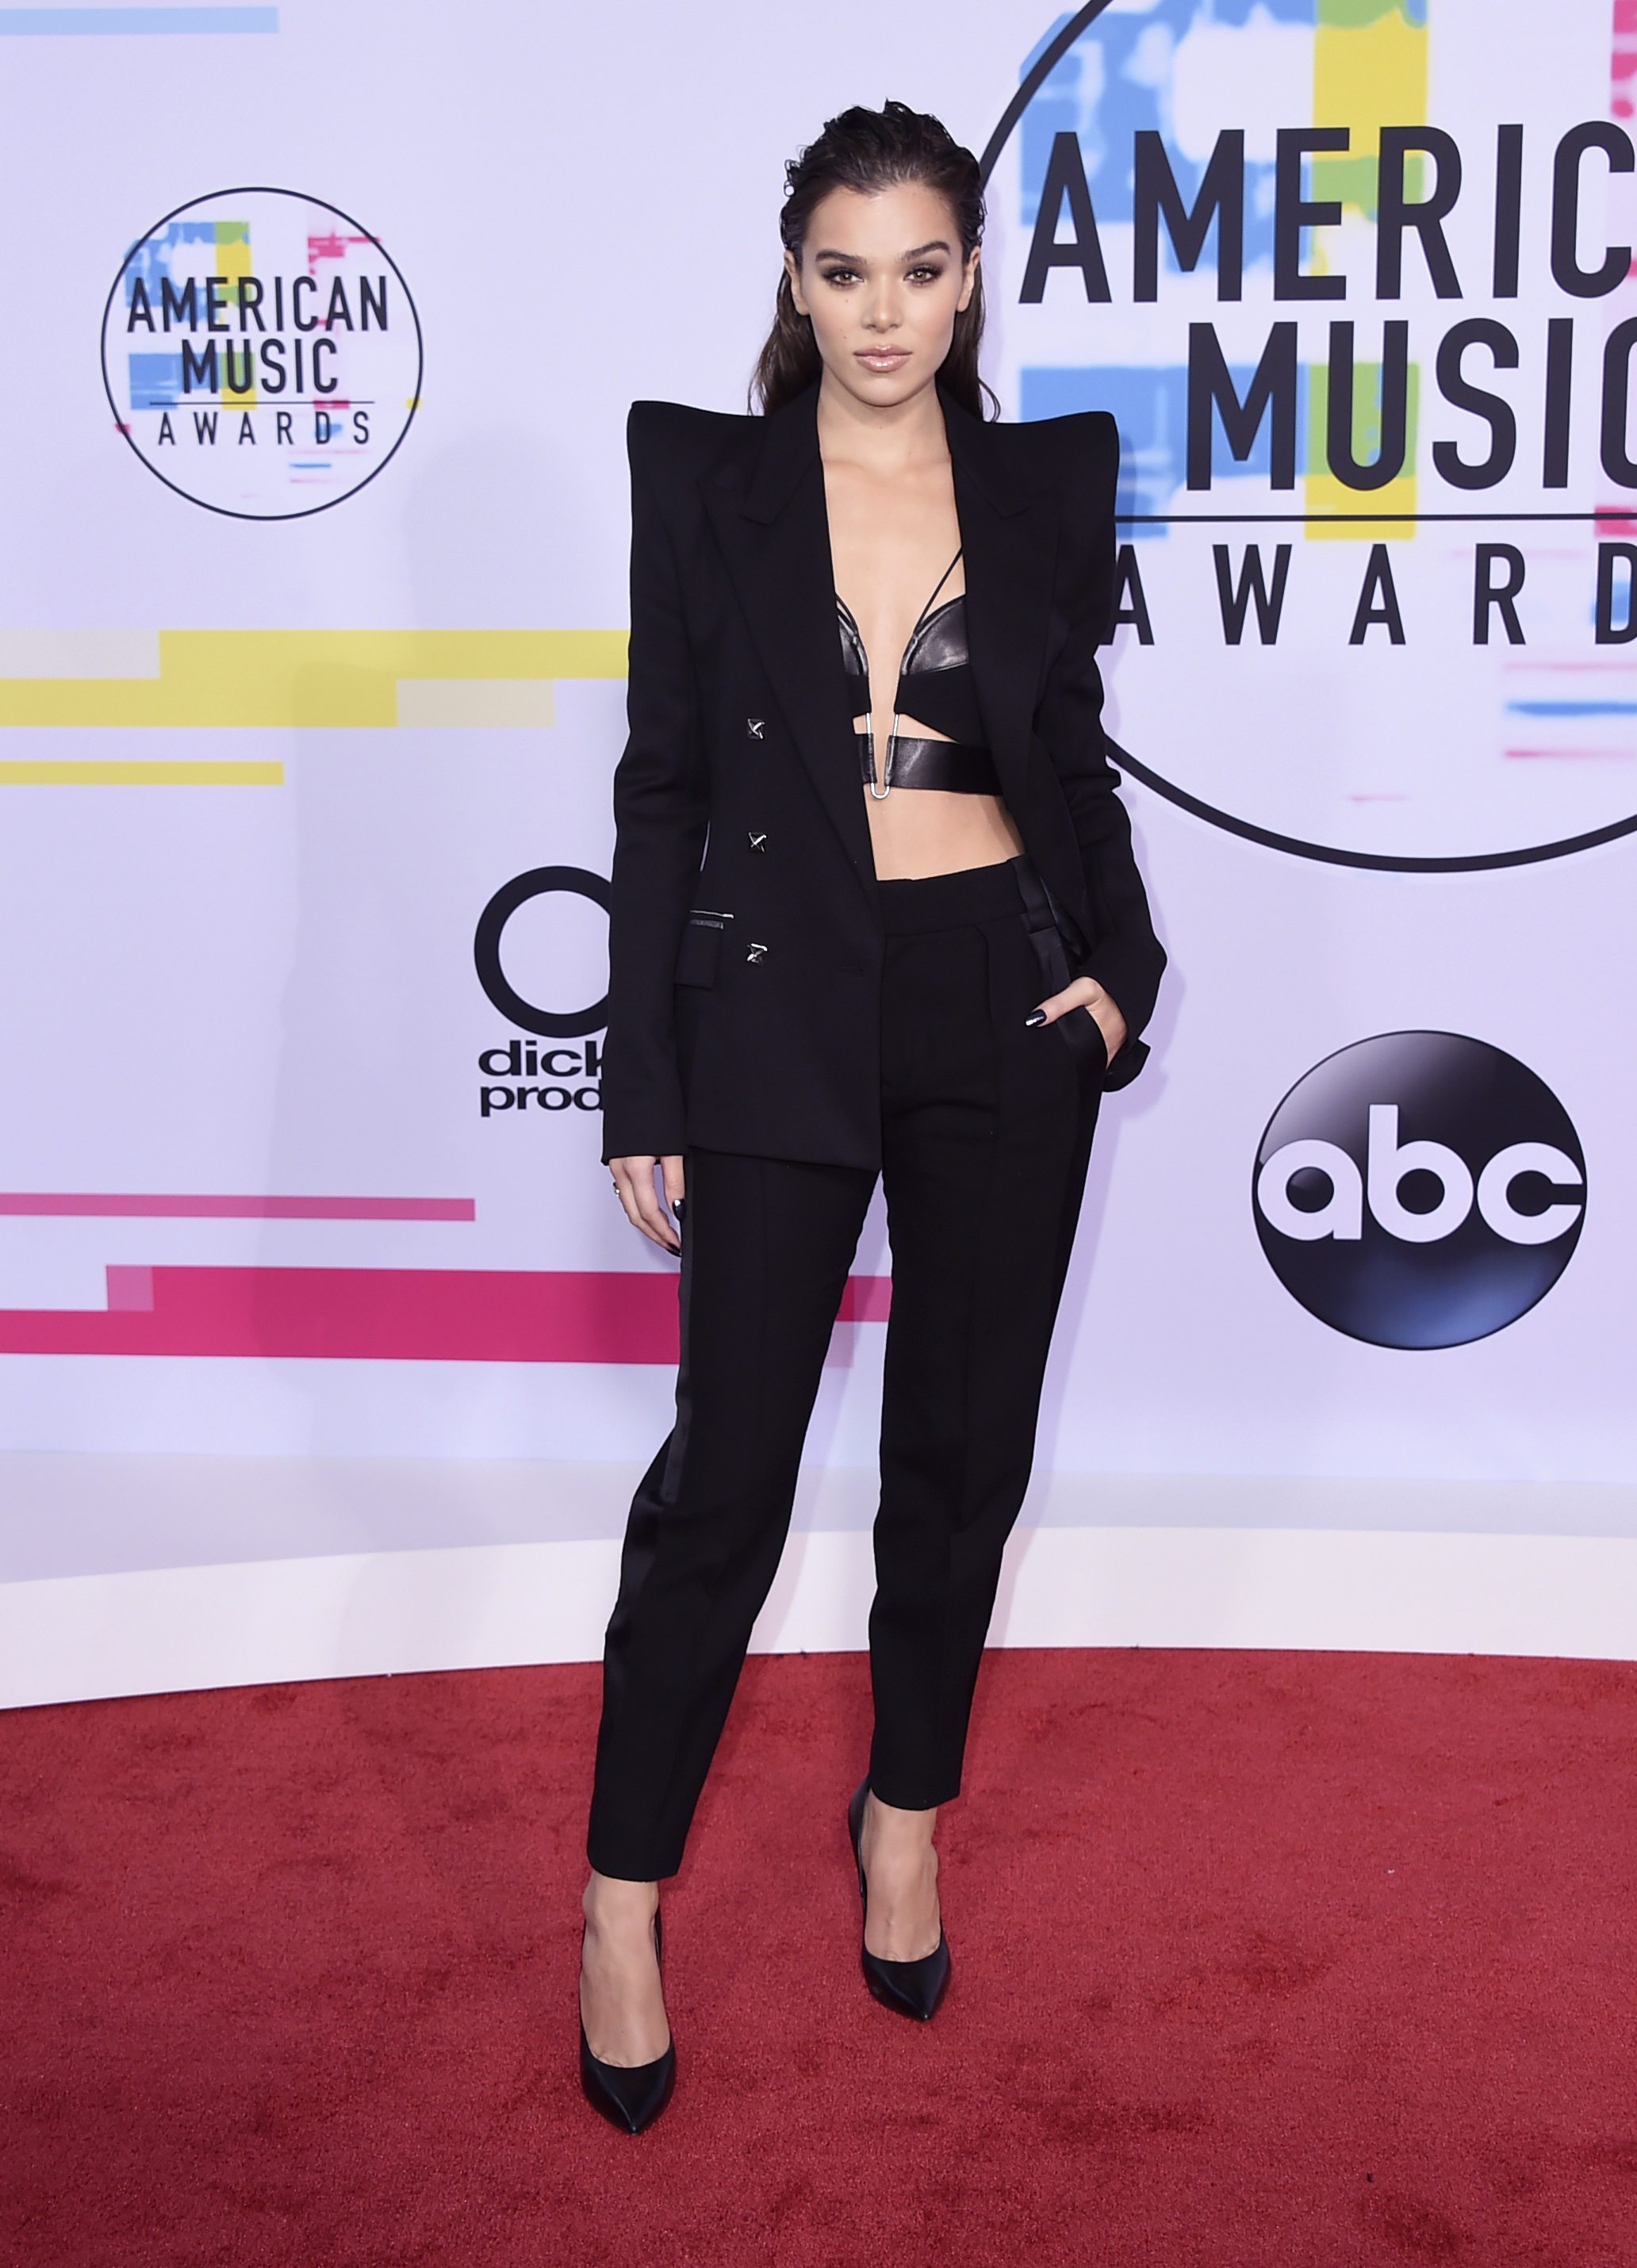 <div class='meta'><div class='origin-logo' data-origin='none'></div><span class='caption-text' data-credit='Jordan Strauss/Invision/AP'>Hailee Steinfeld arrives at the American Music Awards at the Microsoft Theater on Sunday, Nov. 19, 2017, in Los Angeles.</span></div>